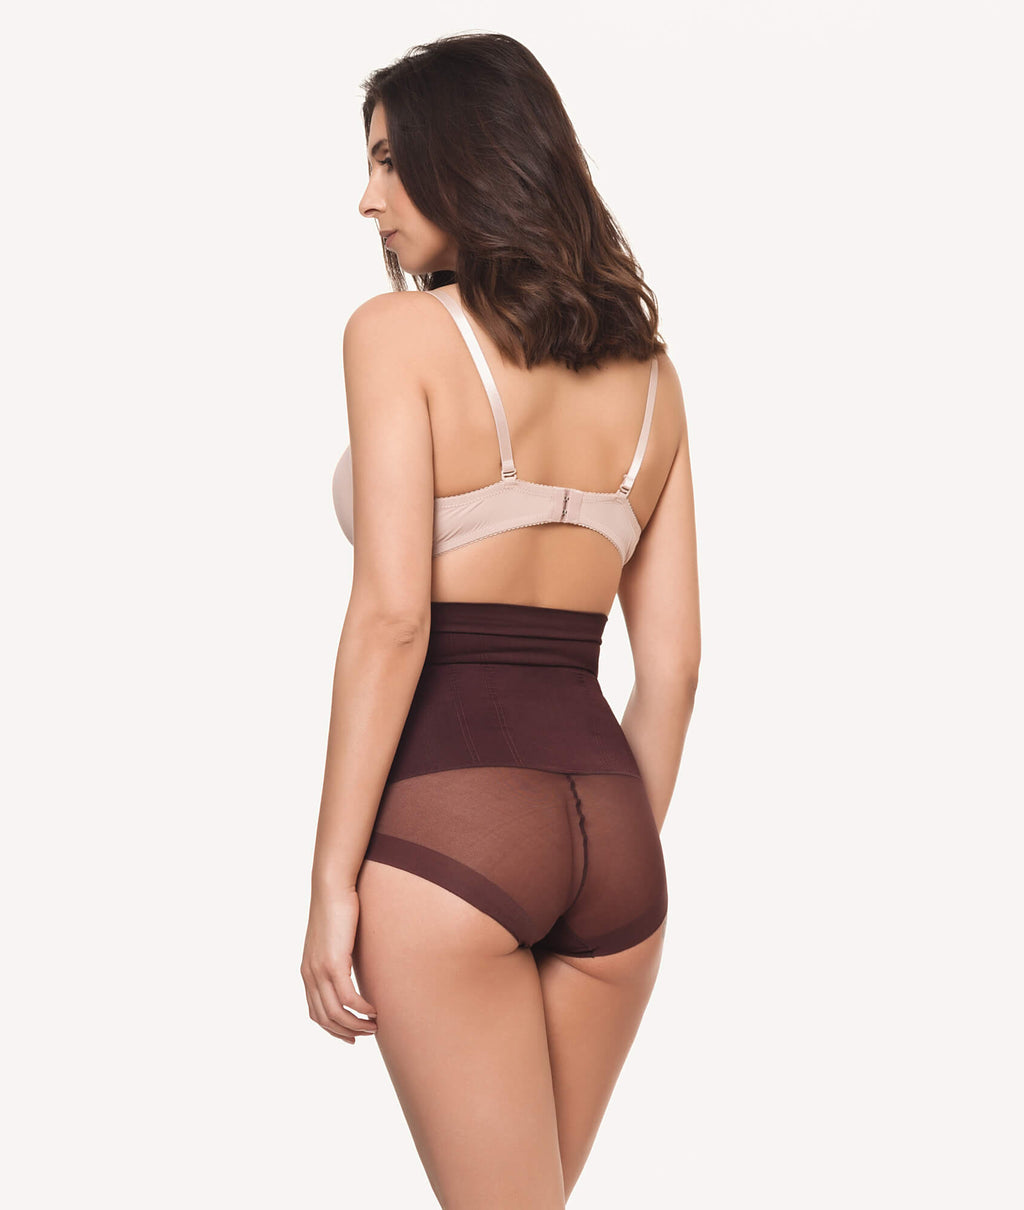 Braga faja reductora invisible sin costuras marron trasera - CHANNO Woman